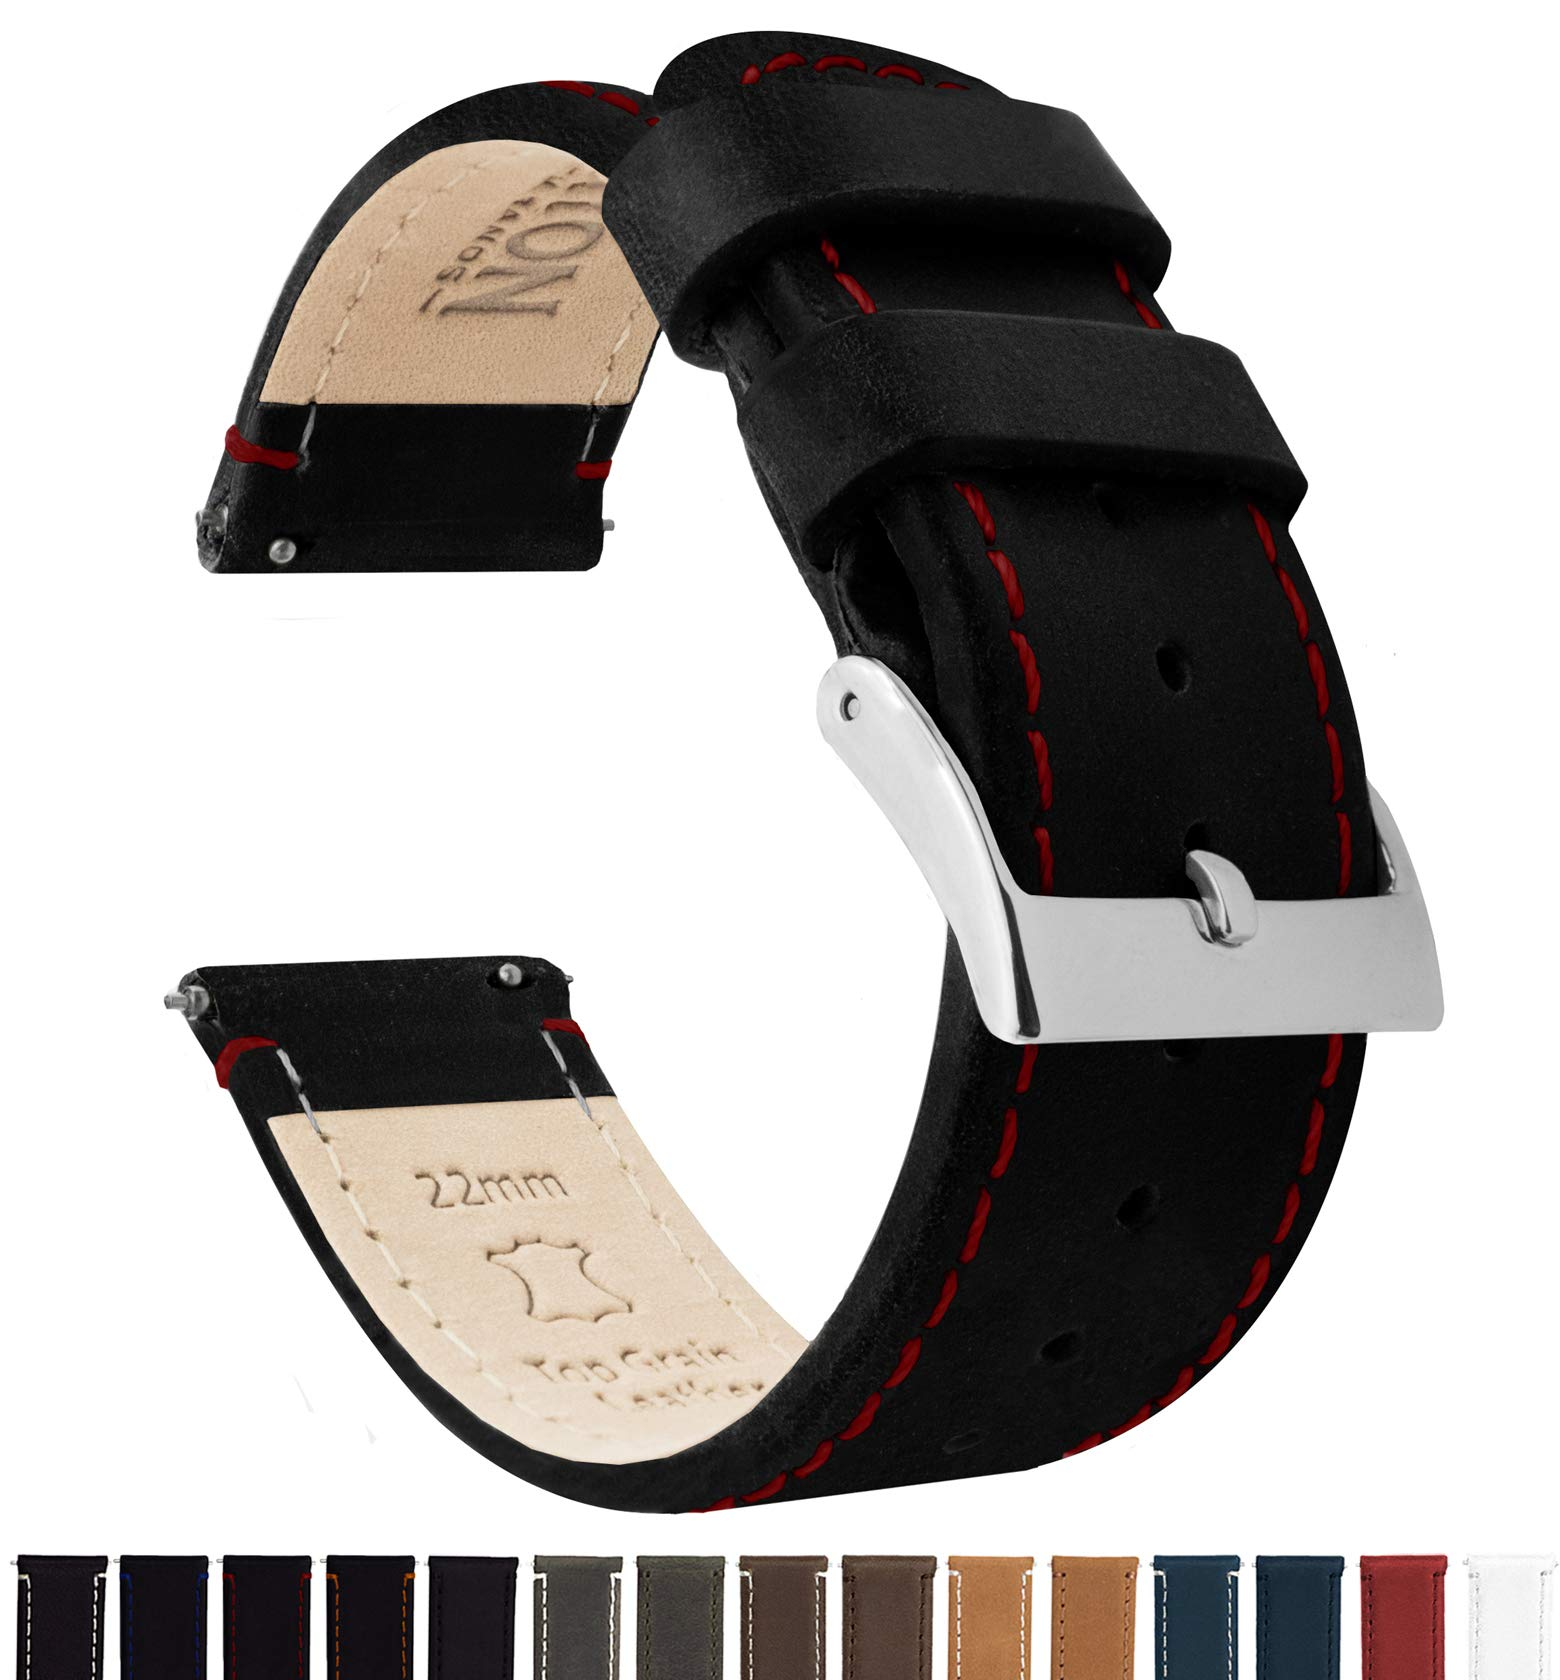 Barton Quick Release - Top Grain Leather Watch Band Strap - Choice of Width - 16mm, 18mm, 19mm, 20mm, 21mm 22mm, 23mm or 24mm - Black/Red Stitching 22mm by Barton Watch Bands